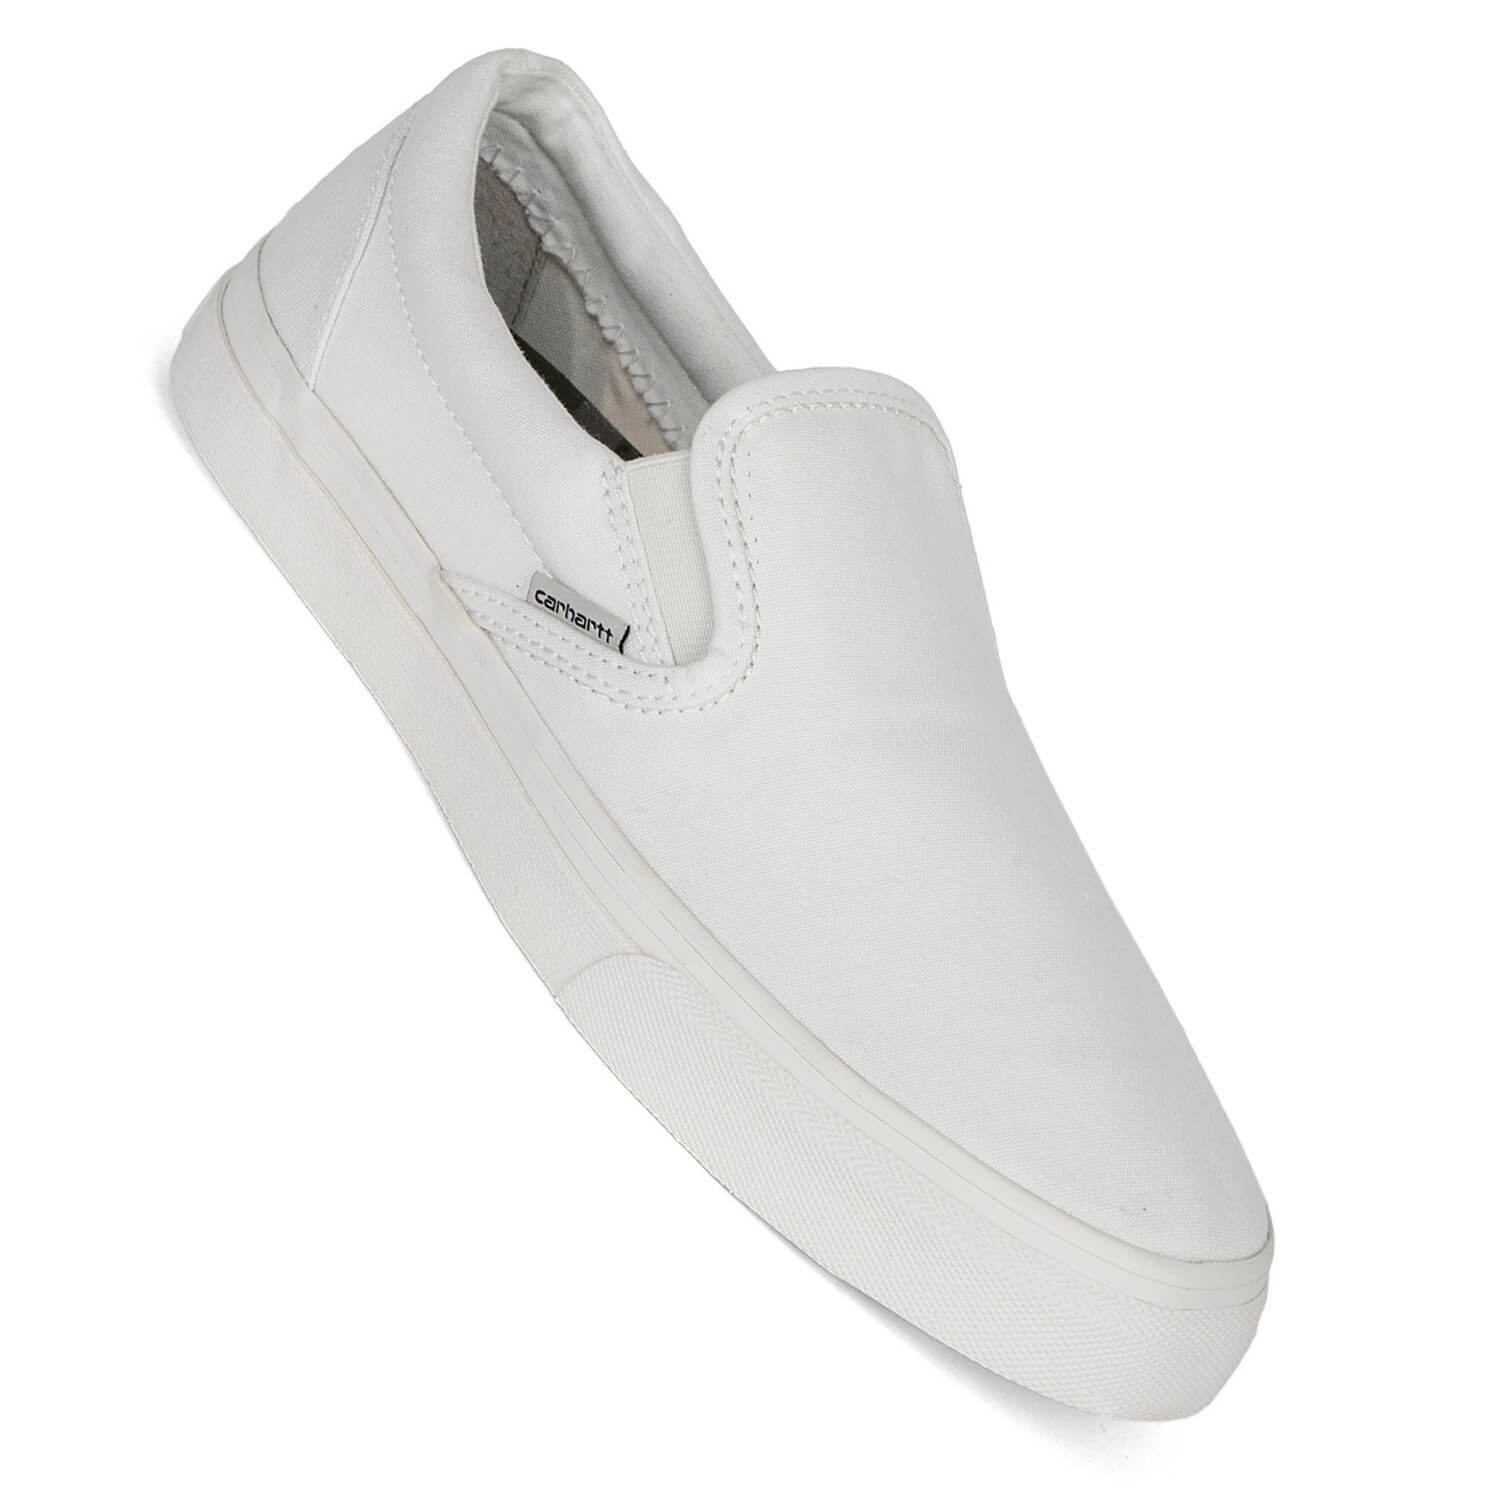 Carhartt chicago slip on off white blanco-calcetines cortos